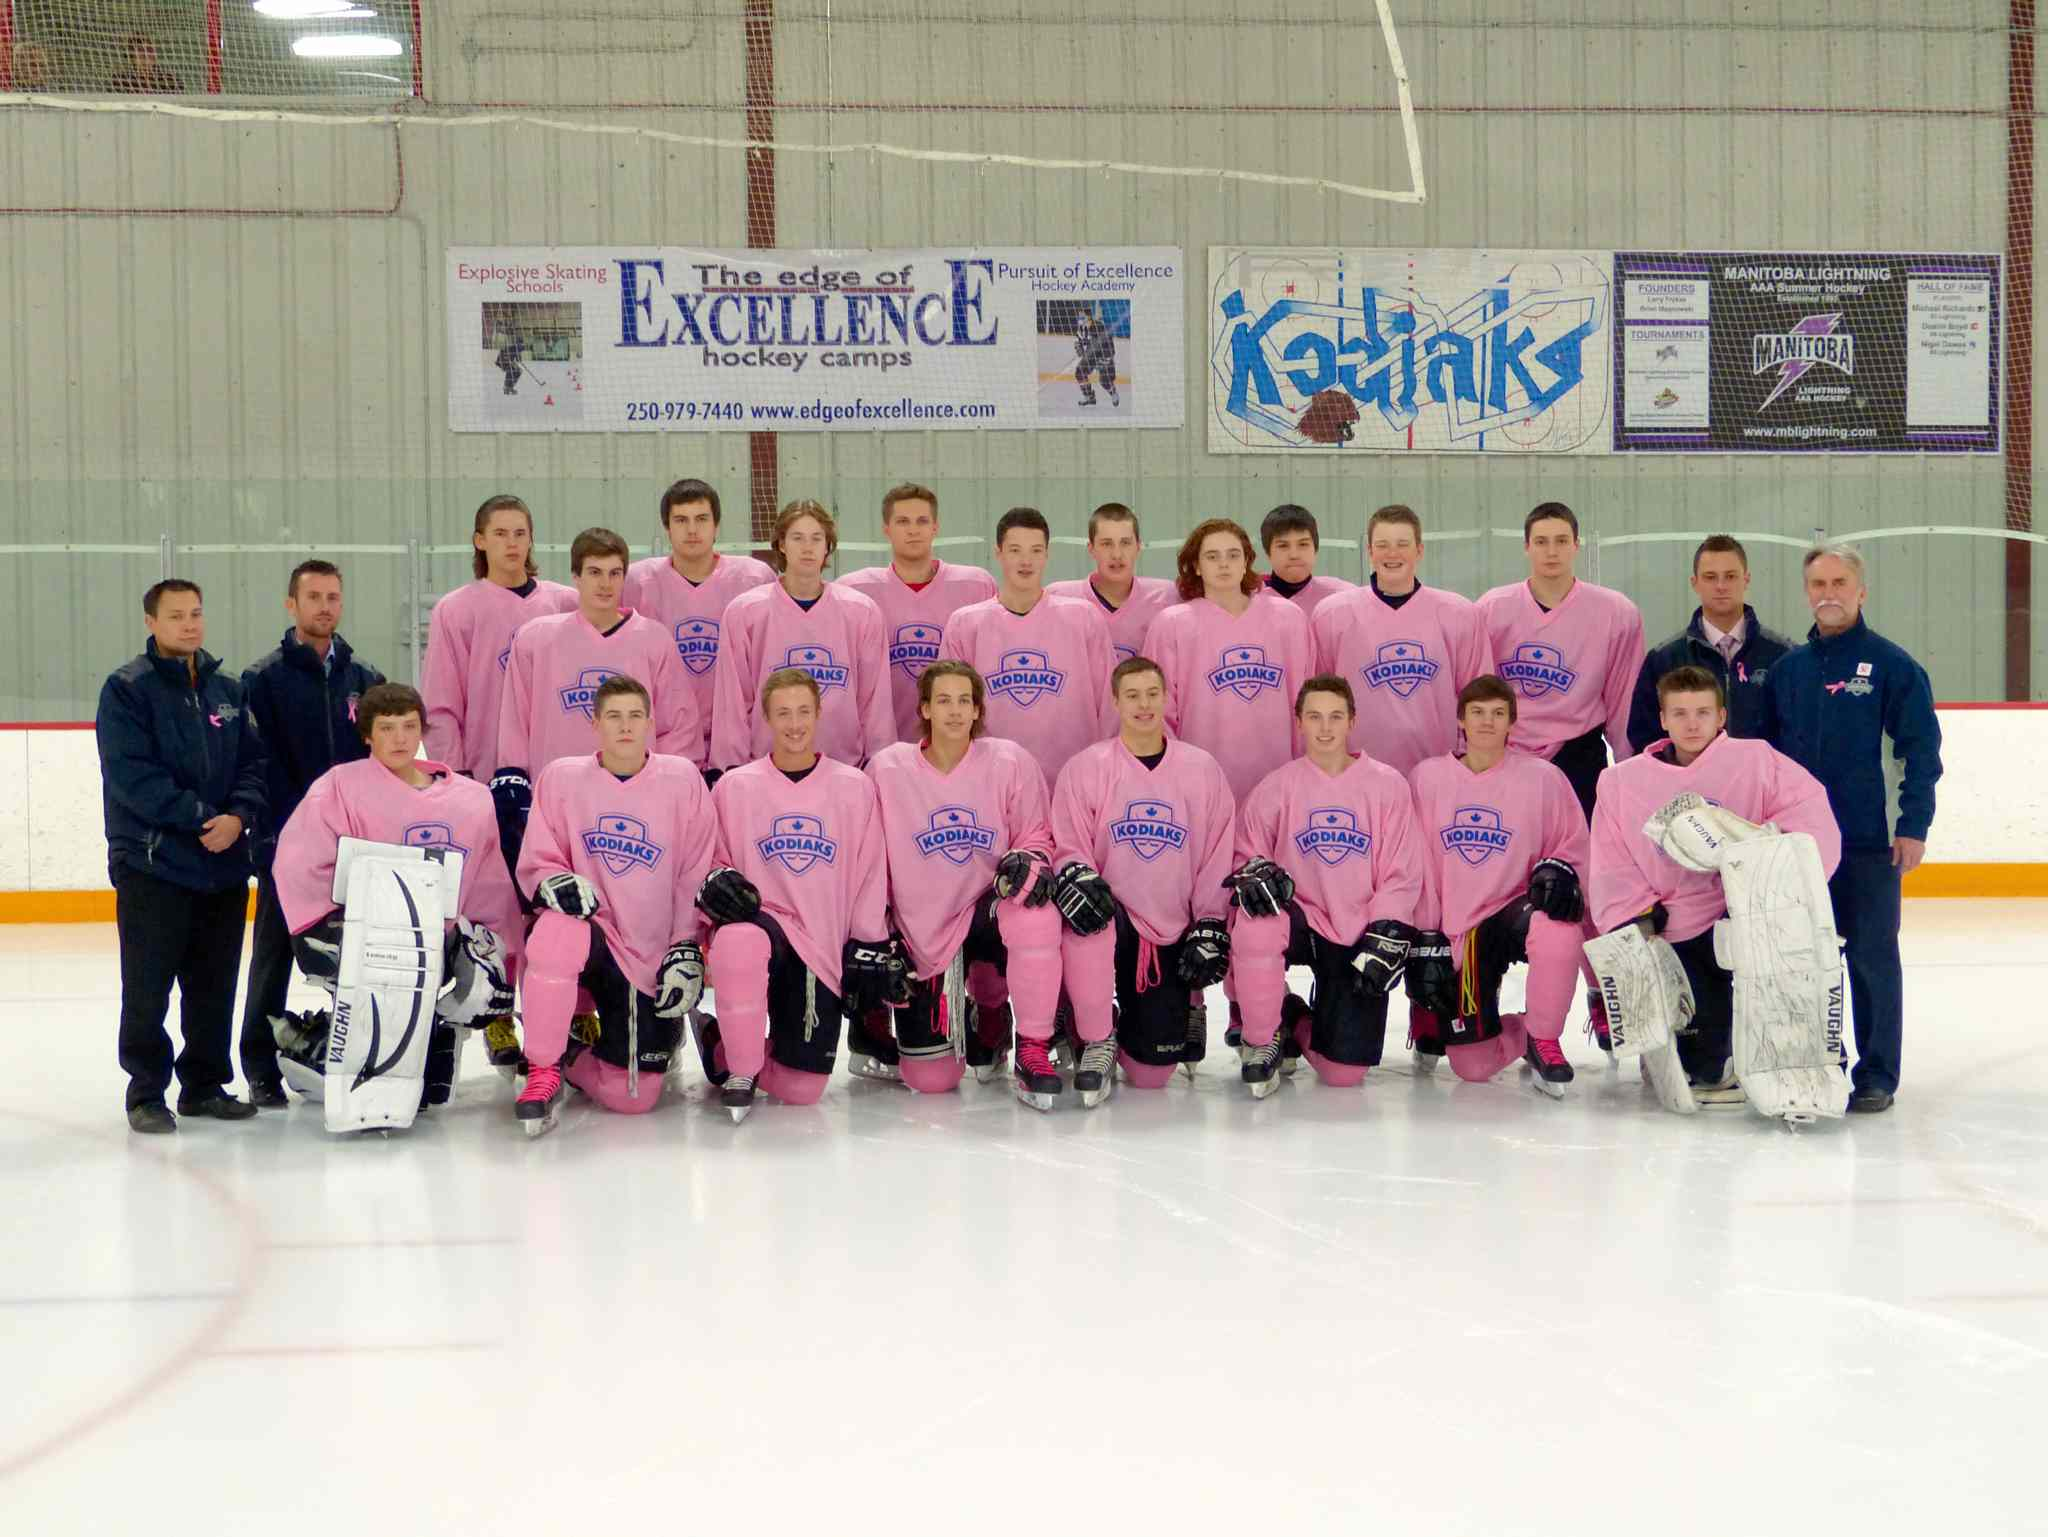 The River East Kodiaks are shown in the pink jerseys they wore during a 4-2 win over the Dakota Lancers at Gateway Recreation Centre on Oct. 29. Back row: Austin Smith, Tristan Beach-Ducharme, Evan Loeb, Dale Mounk, and Chase Beach-Ducharme. Middle row: Darren Wong (assistant coach), Chris Zajac (assistant coach), Josh Martineau, Steven Paulley, Holden Bard, Brady Valiquette, Jackson Dartnell, Jonathan Corbett, Scott Zieba (assistant coach), and Ben Zajac (head coach). Front row: Myles Piche, Craig Caine, Tyler Hall, Nolan Wisniewski, Matt Allen, Mike Dzioba, Easton Brasko, and Randy Quick.